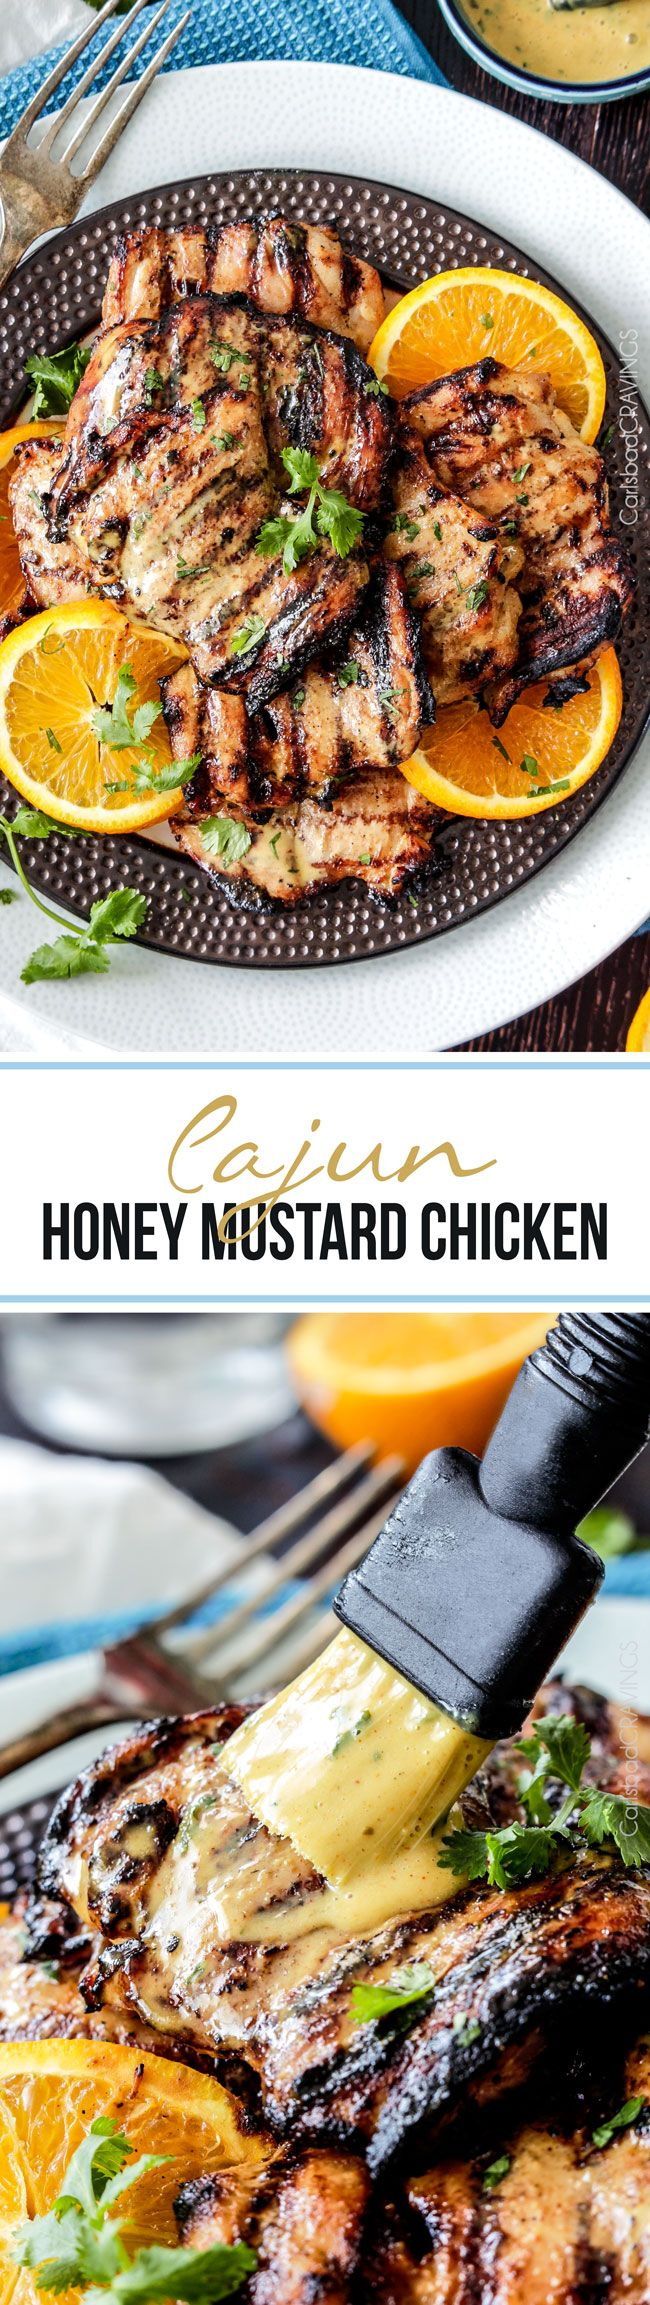 Cajun Honey Mustard Chicken - Smothered in a creamy honey mustard sauce - an easy marinate ahead weeknight meal or delicious enough for company!